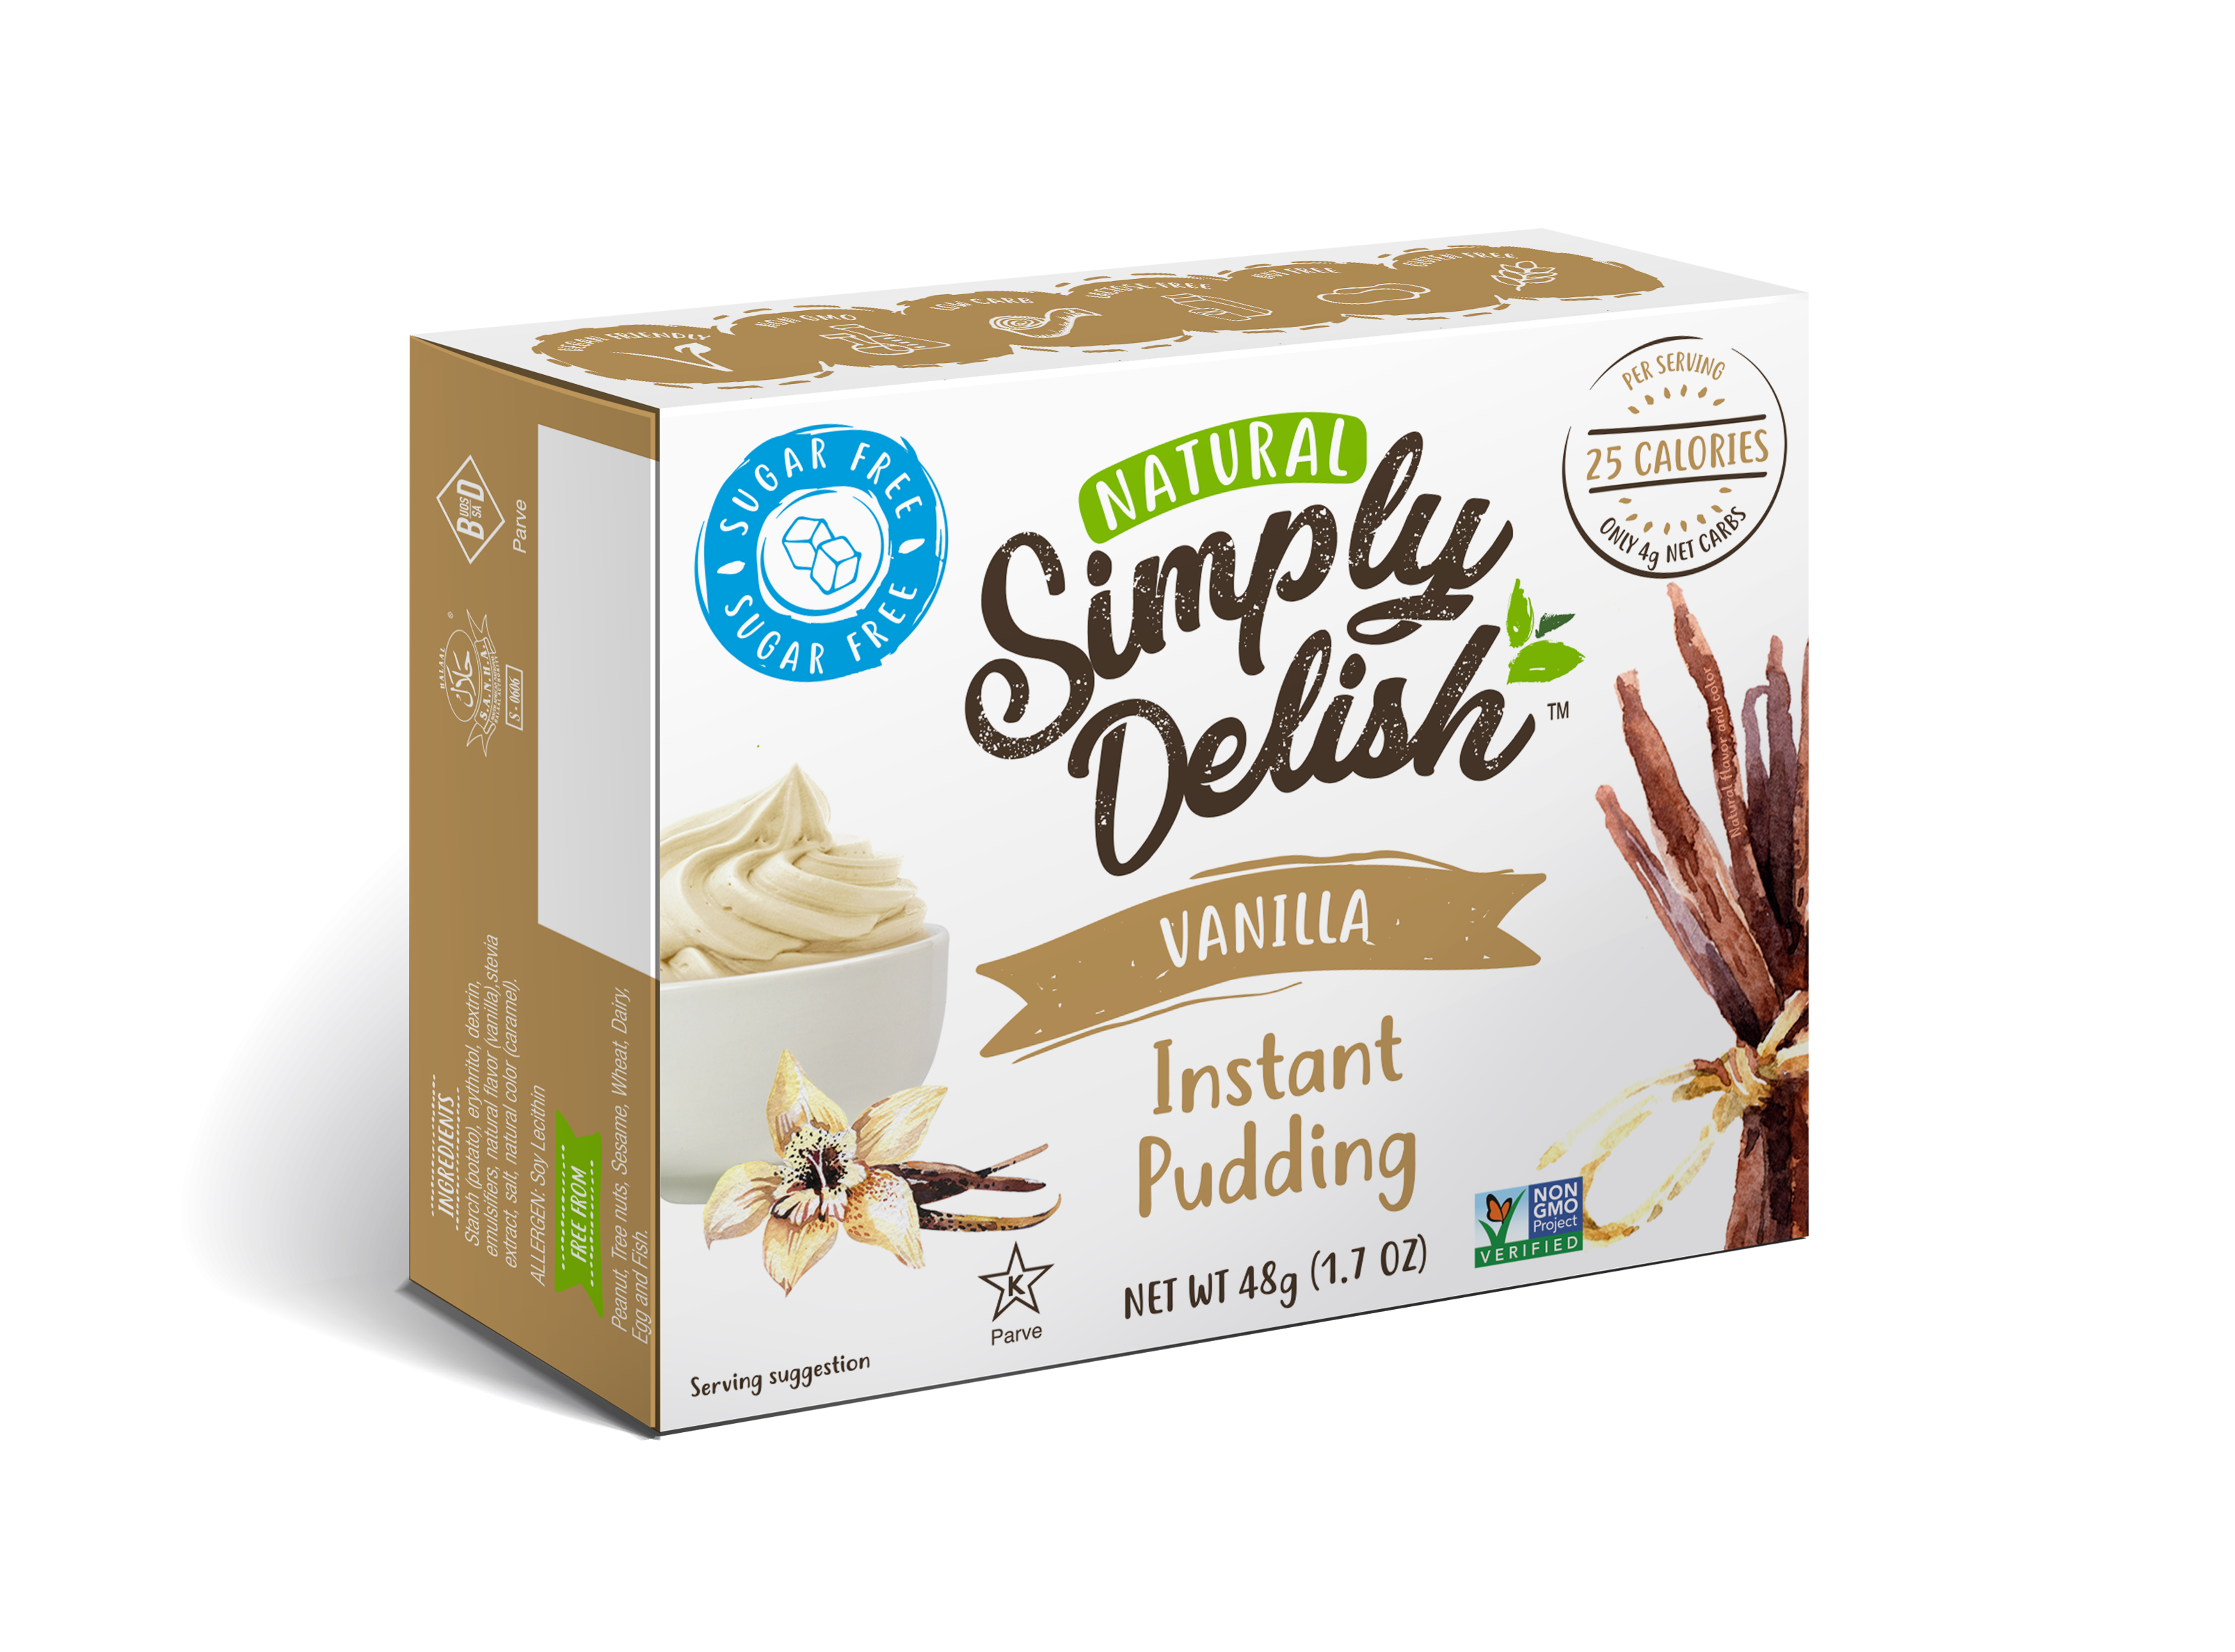 NATURAL VANILLA INSTANT PUDDING | The Natural Products